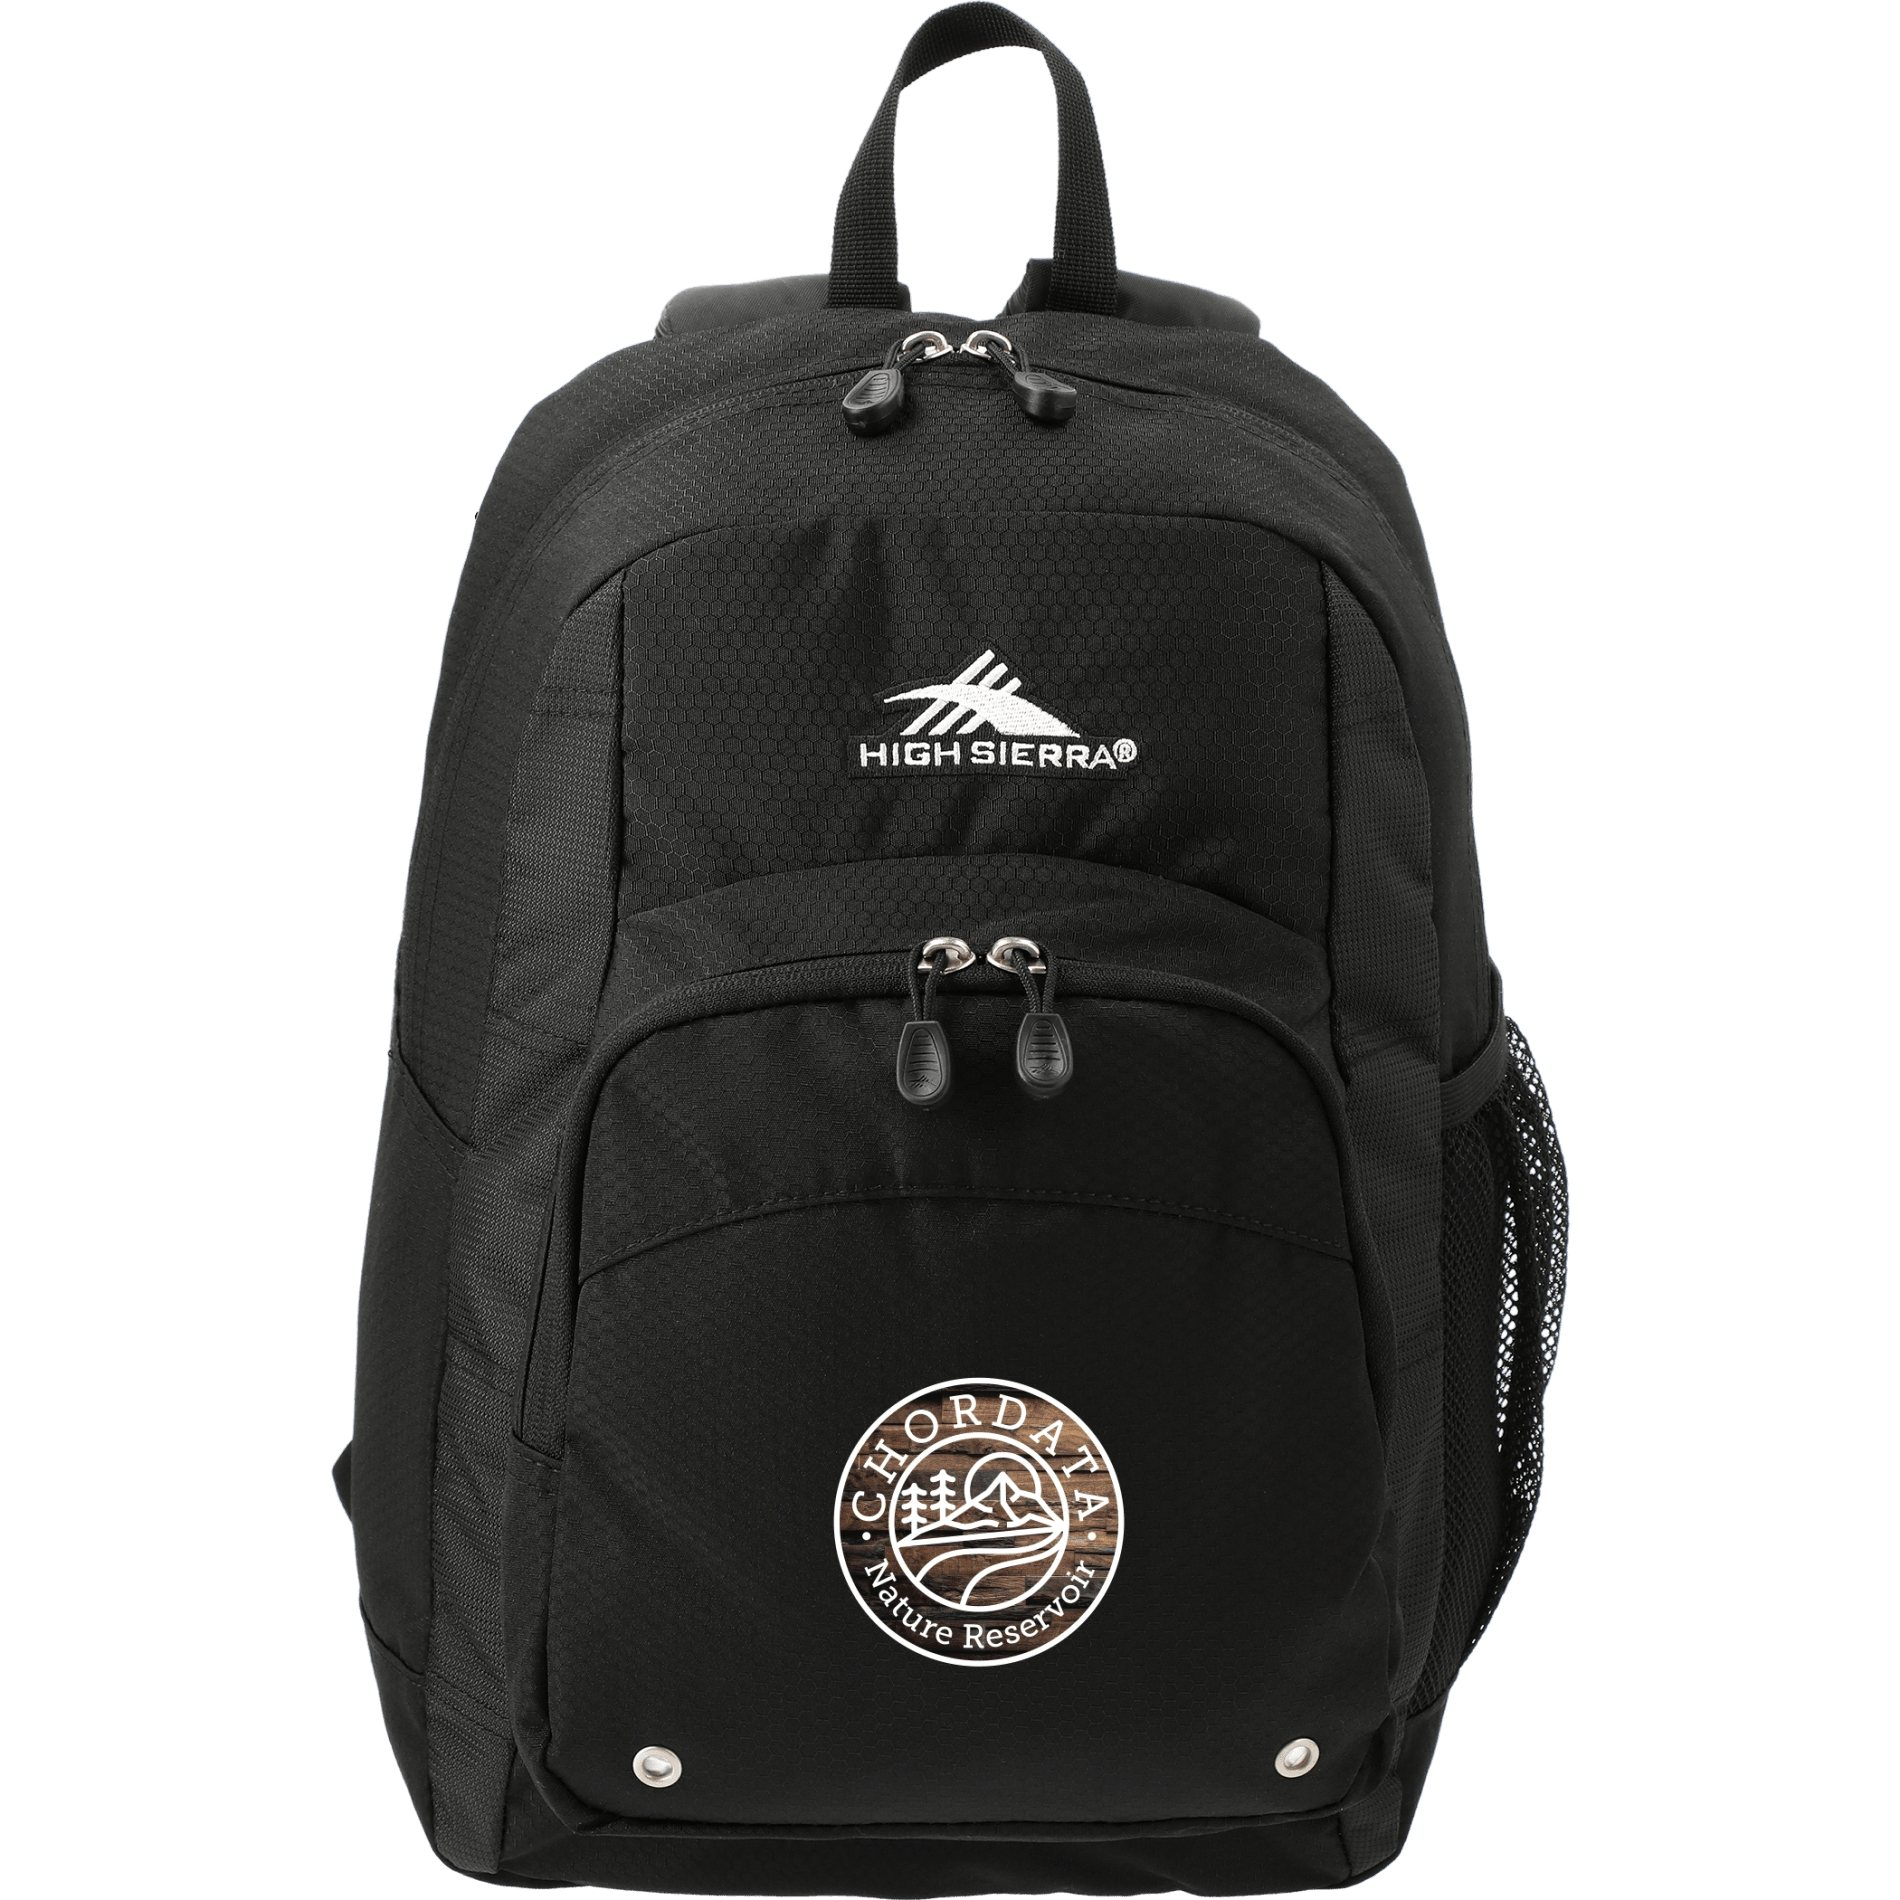 High Sierra Multifunction Impact Daypack Bag With Multiple Color Choices